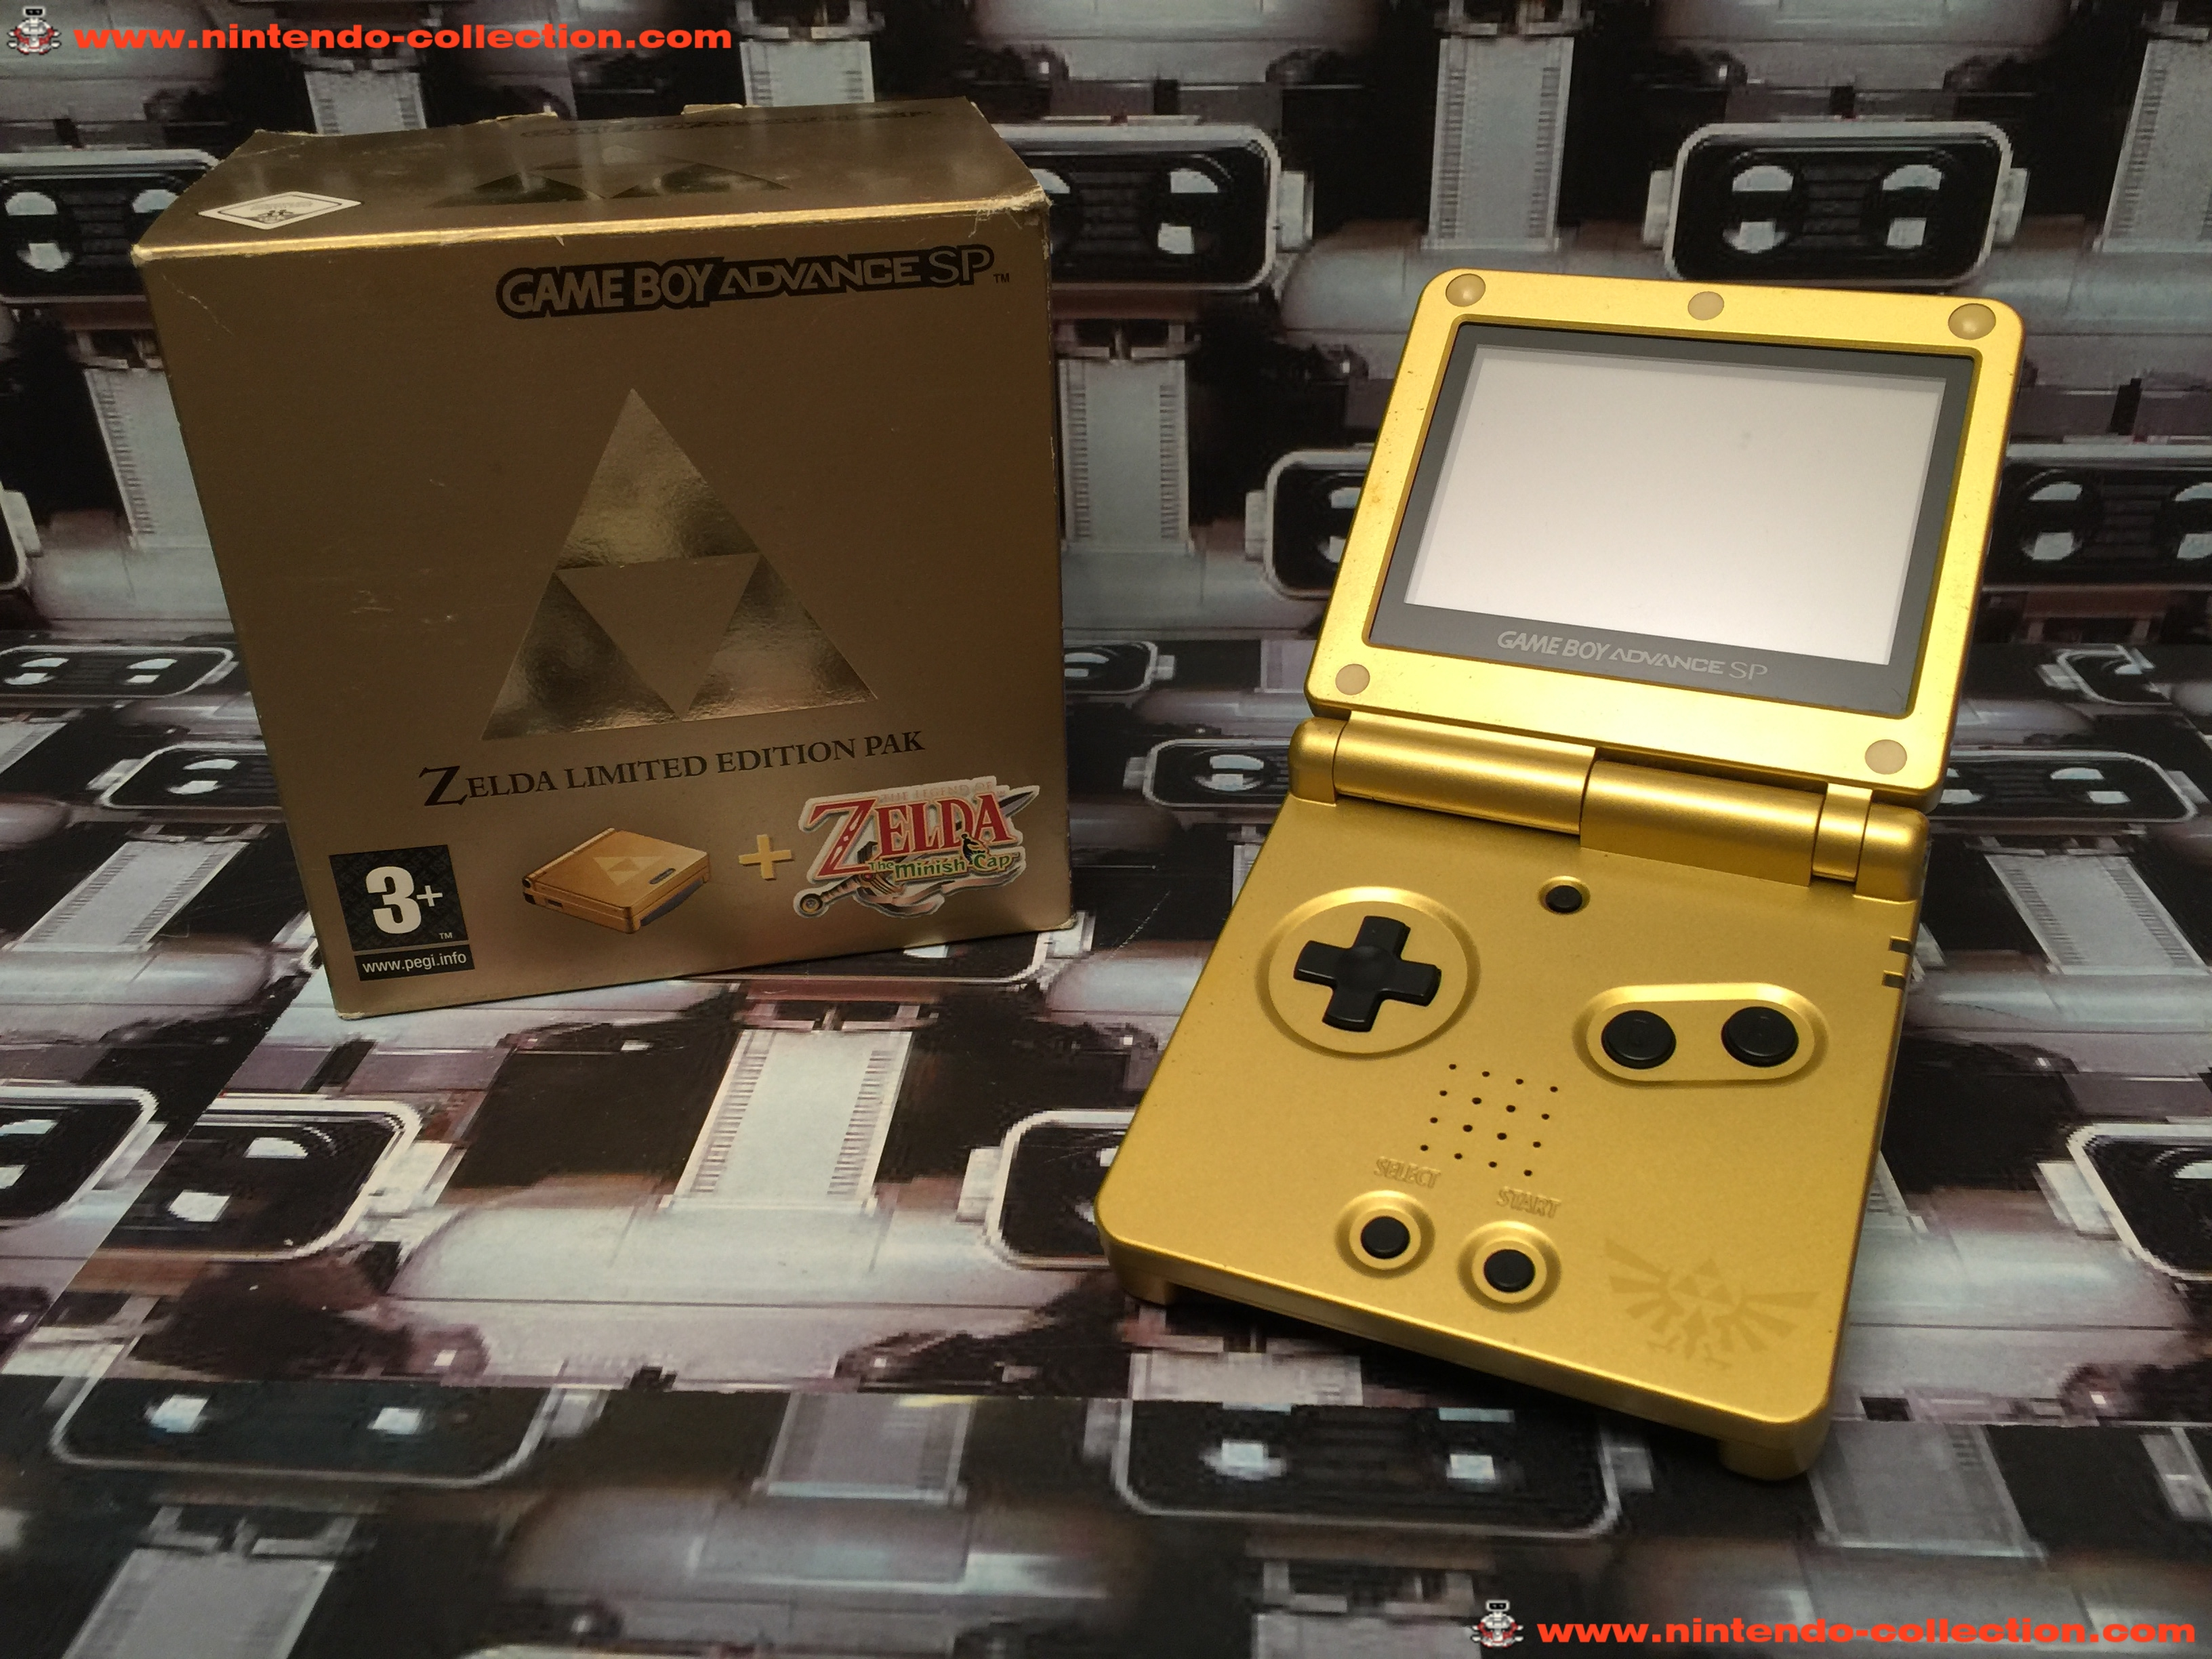 www.nintendo-collection.com - Gameboy Advance GBA SP Zelda Edition europeenne european - 02